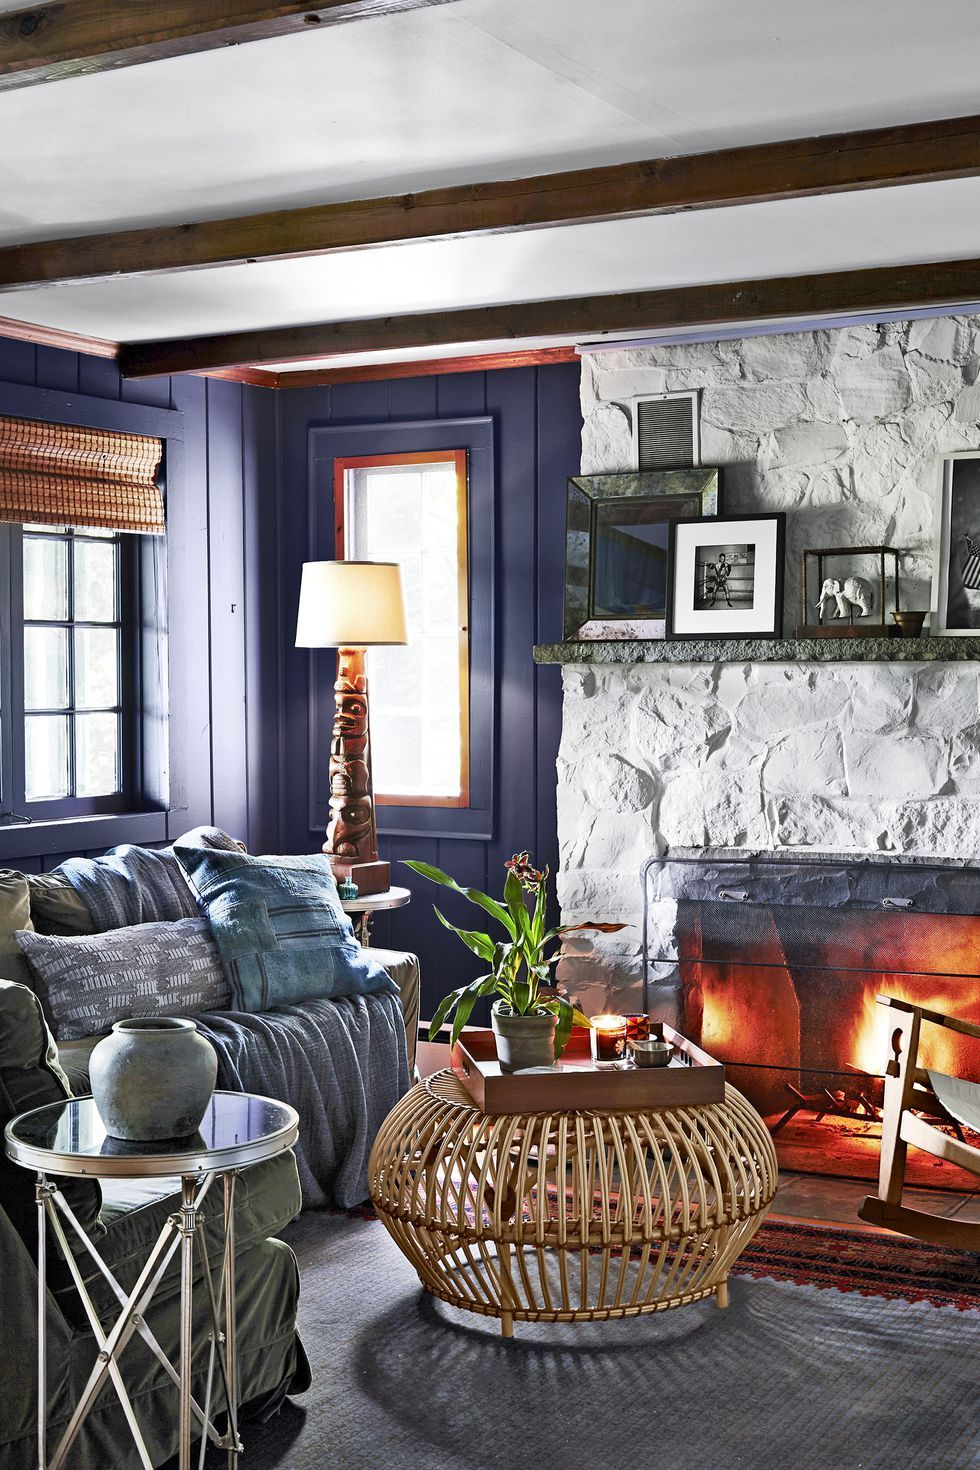 Fireplace Design Idea 40 Fireplace Design Ideas Fireplace Mantel Decorating Ideas